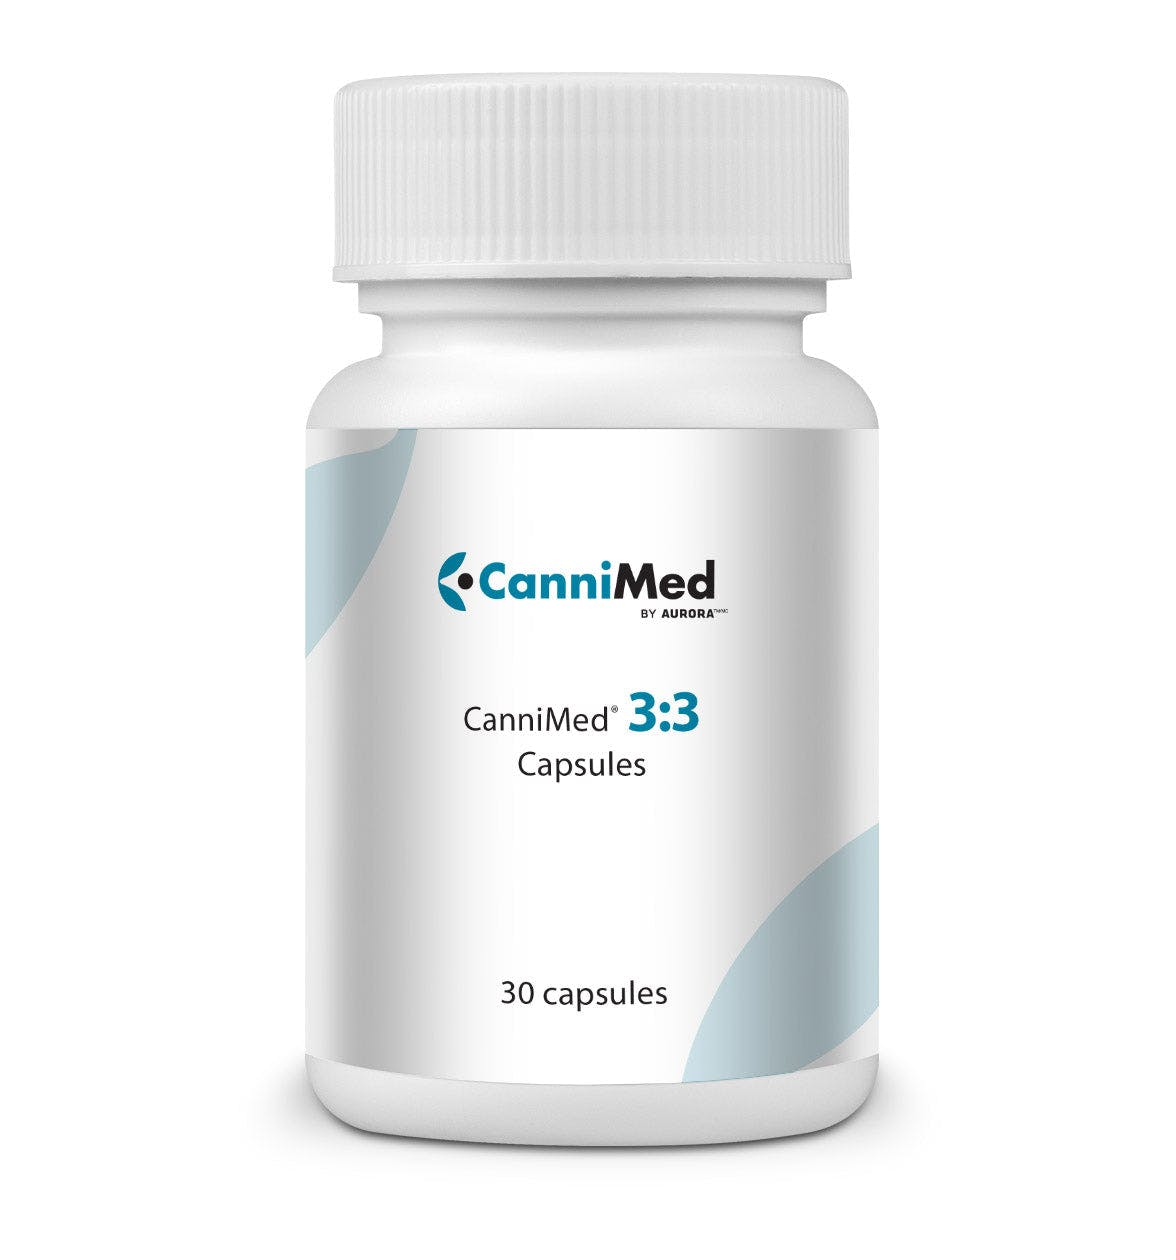 CanniMed Capsules 3:3